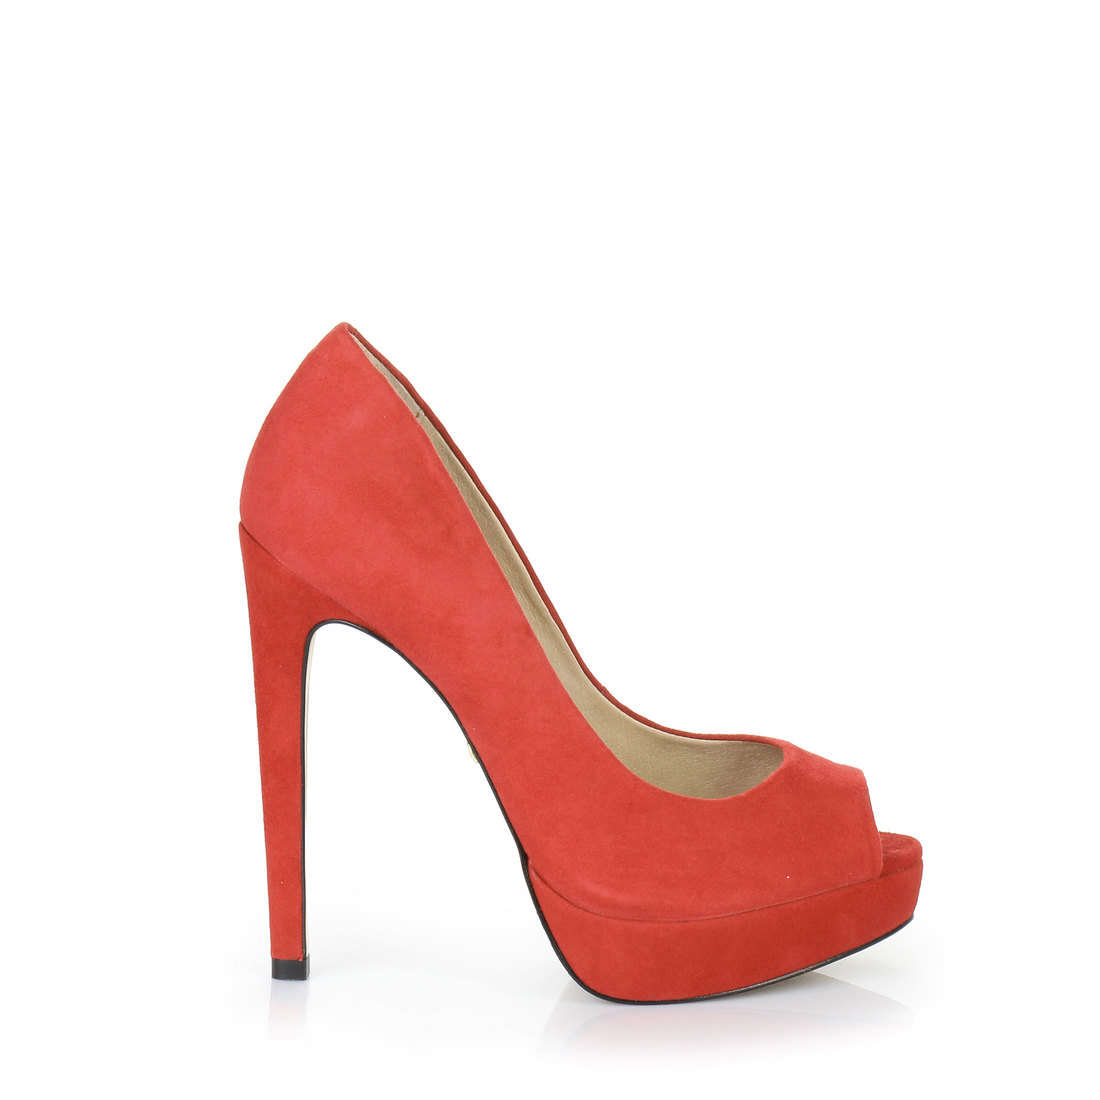 Buffalo London Peep Toe Shoes